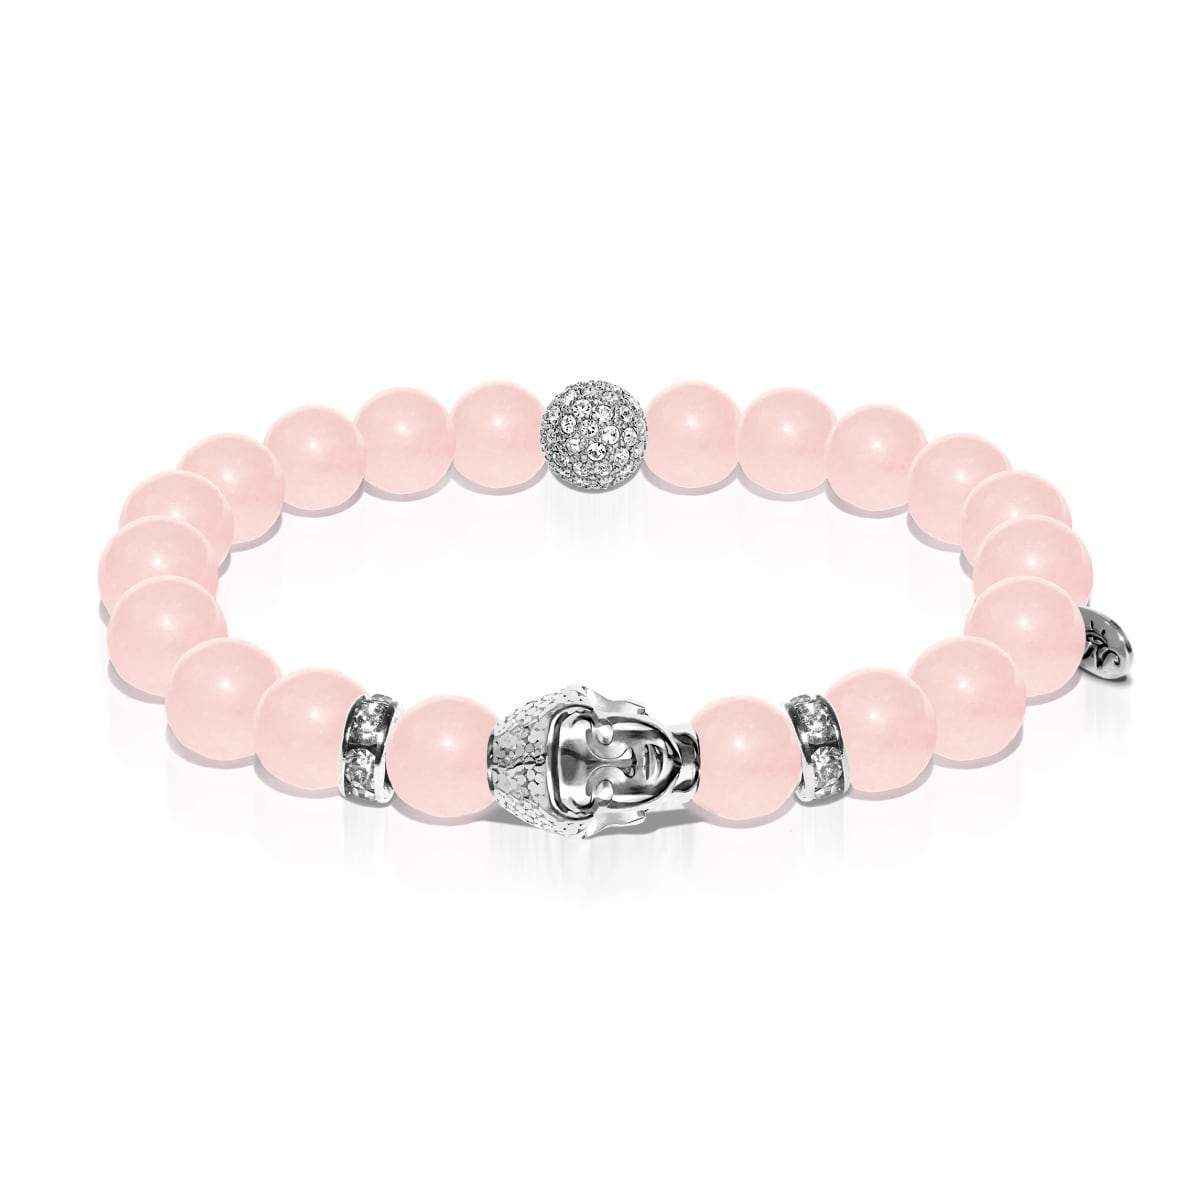 Elemental Energy | White Gold Buddha | Rose Quartz Bracelet